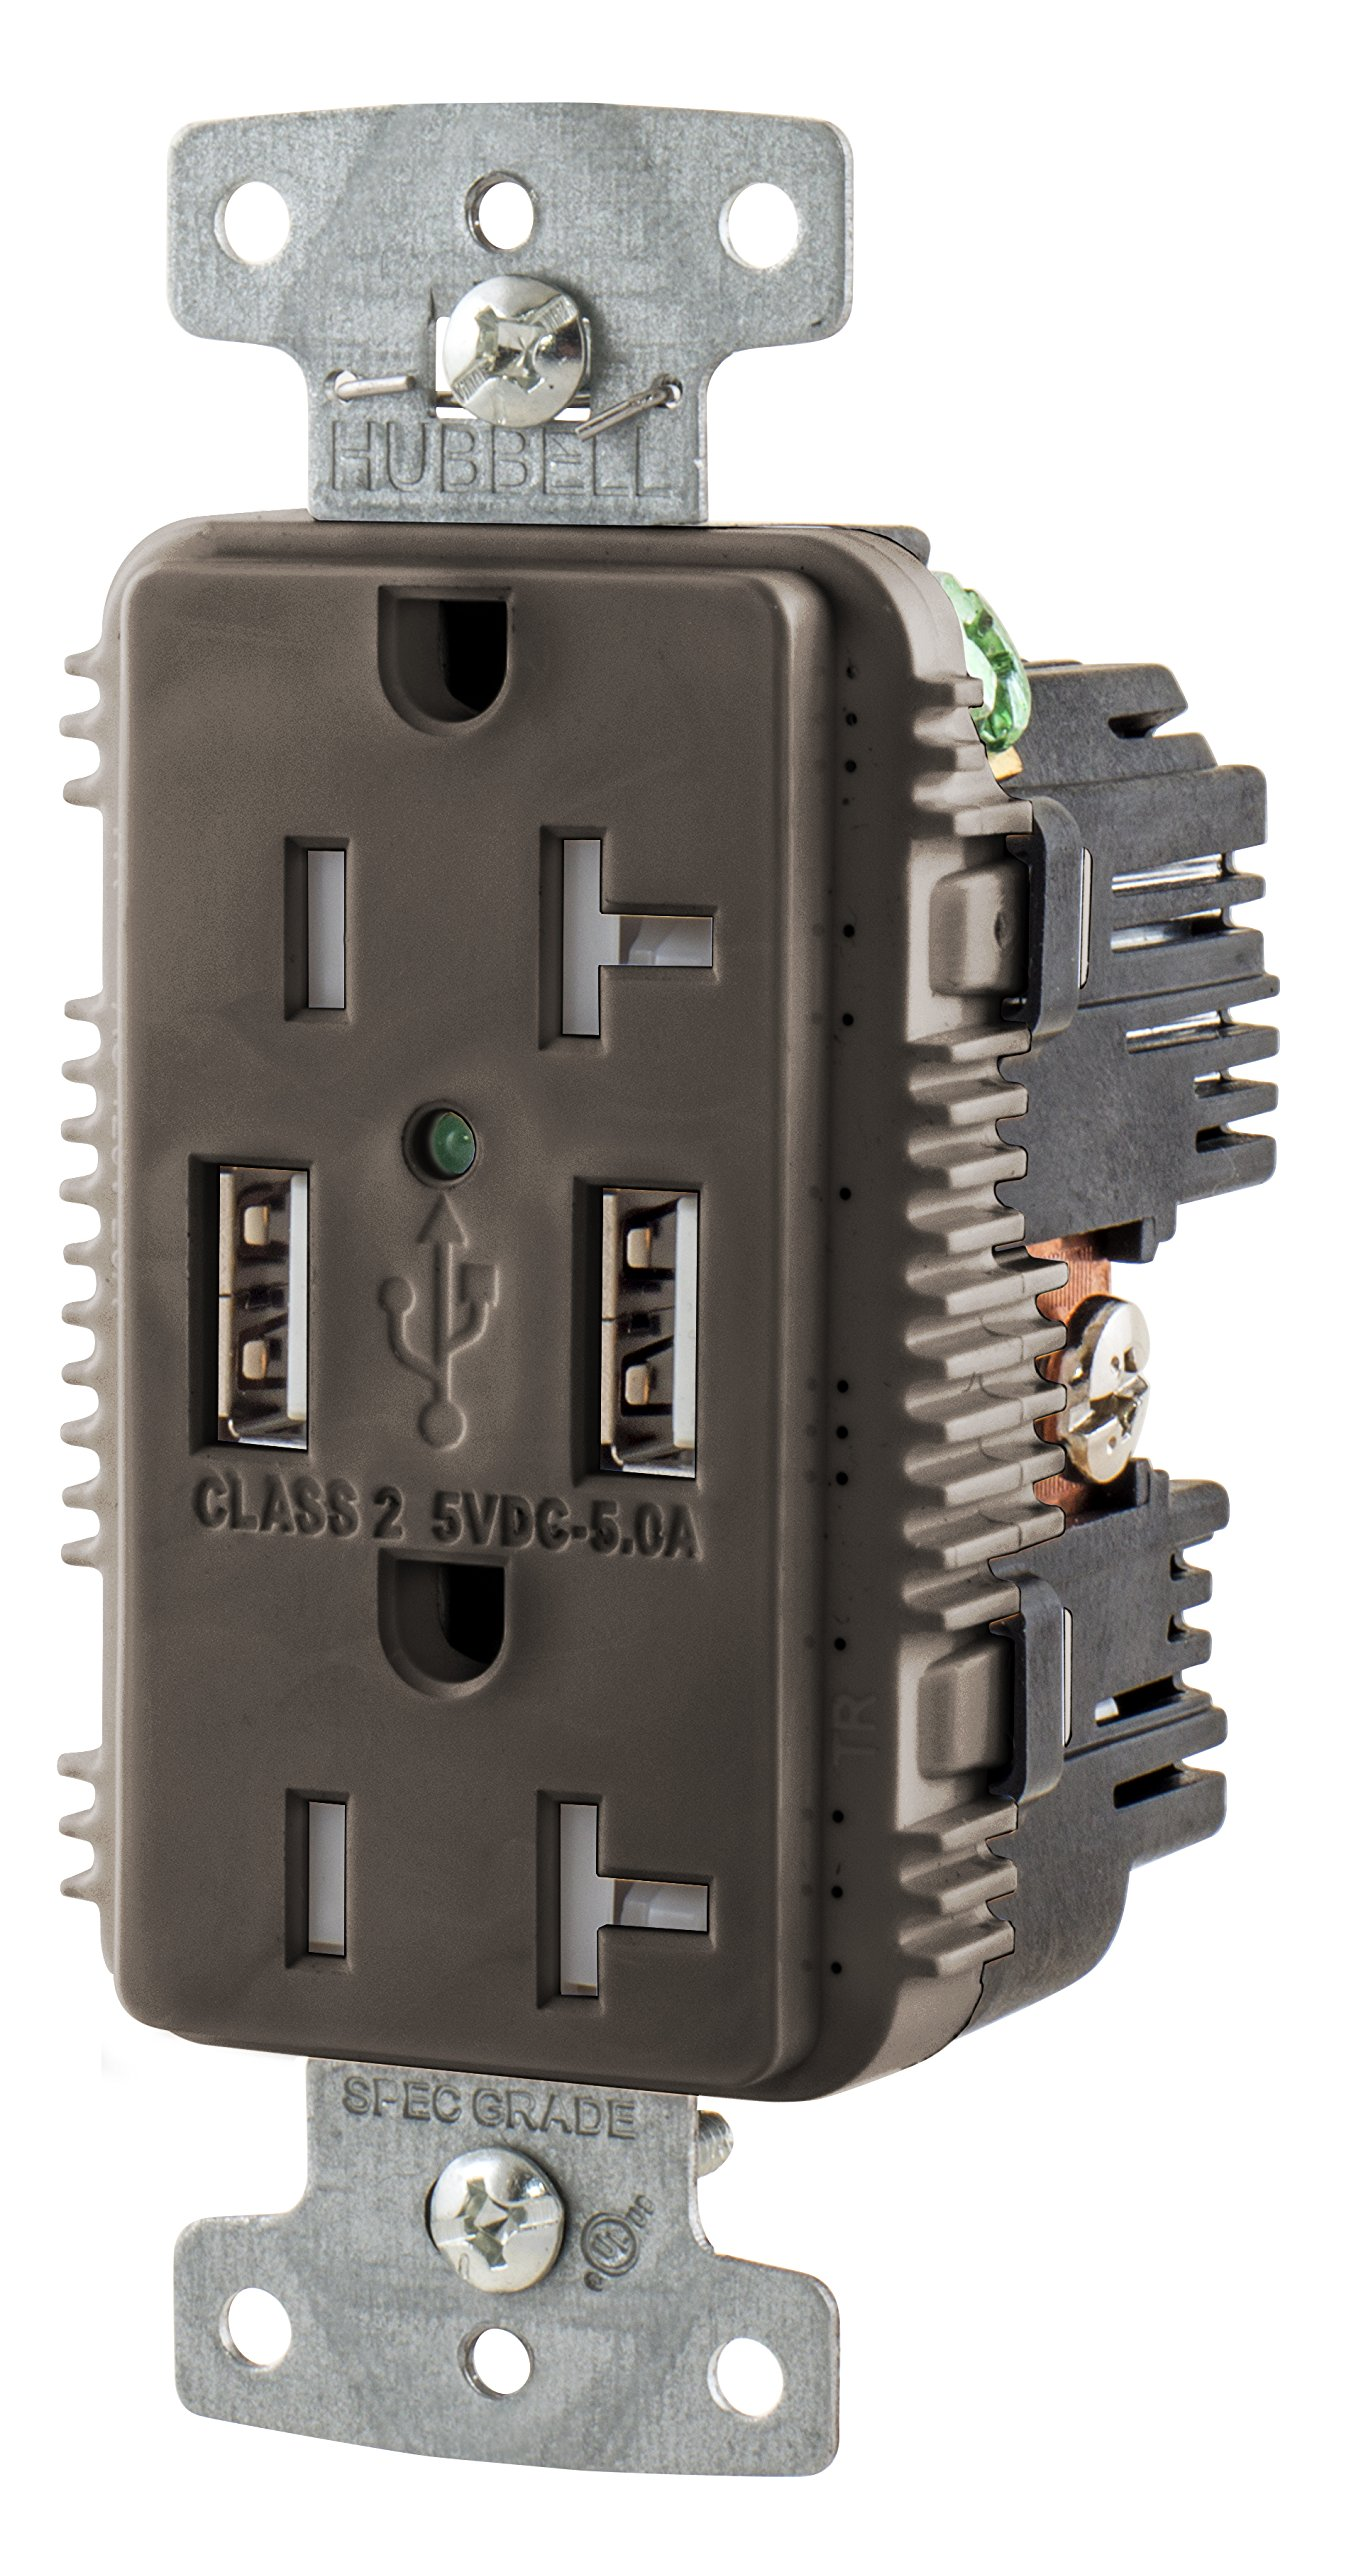 Bryant Electric USBB20A5 5.0 Amp Mega High Speed Dual Type A USB Charger Outlet, 20 Amp 125 Volt Tamper Resistant Duplex Receptacle, Brown